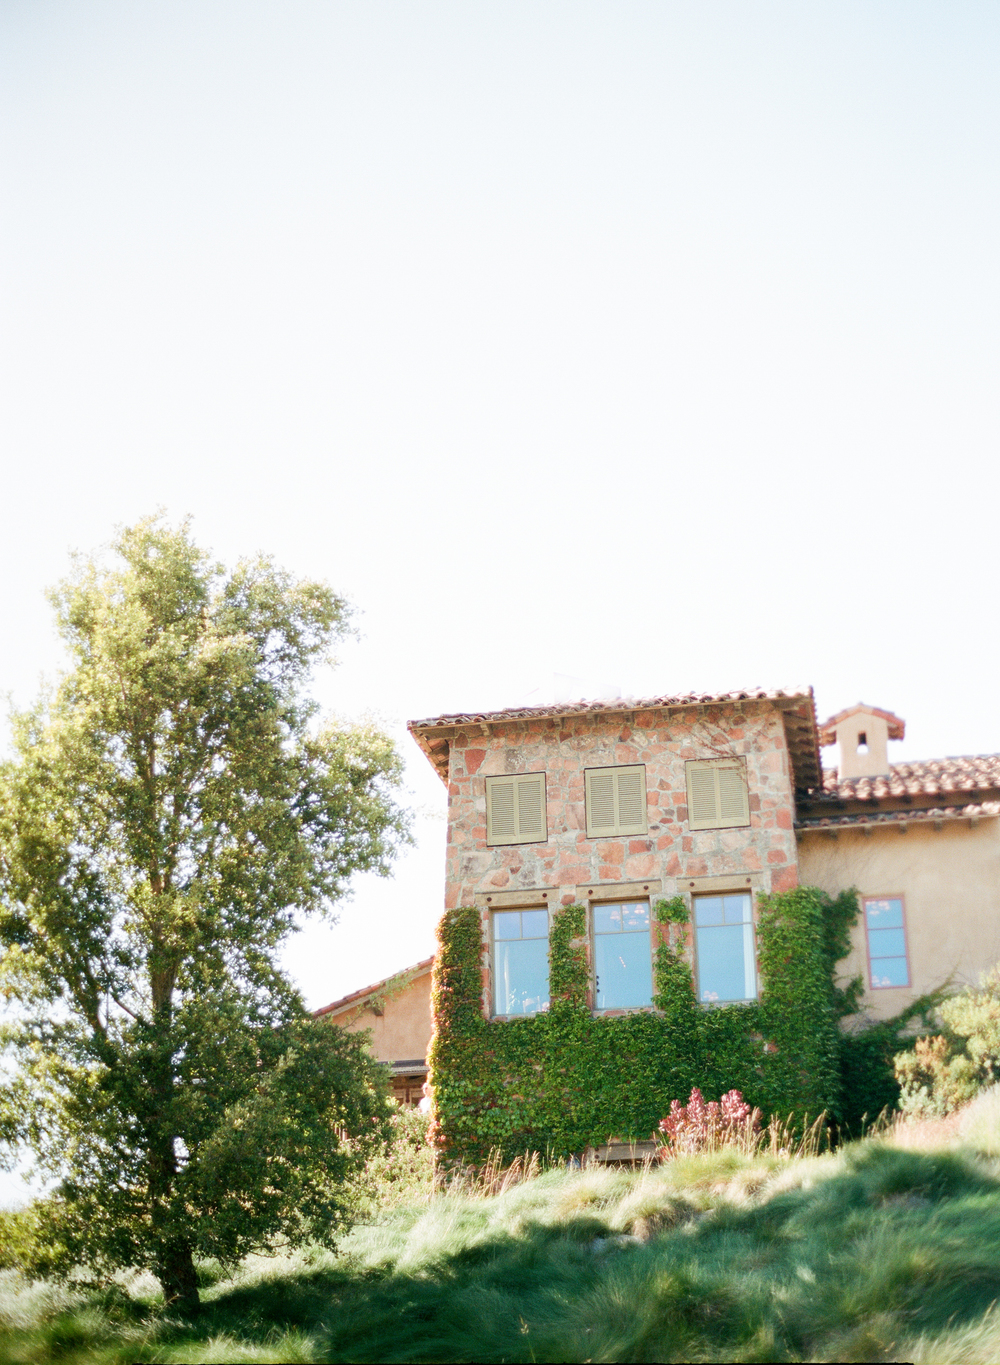 The venue, a club in Calistoga, emulating the feel of an idyllic Italian villa; photo by Sylvie Gil